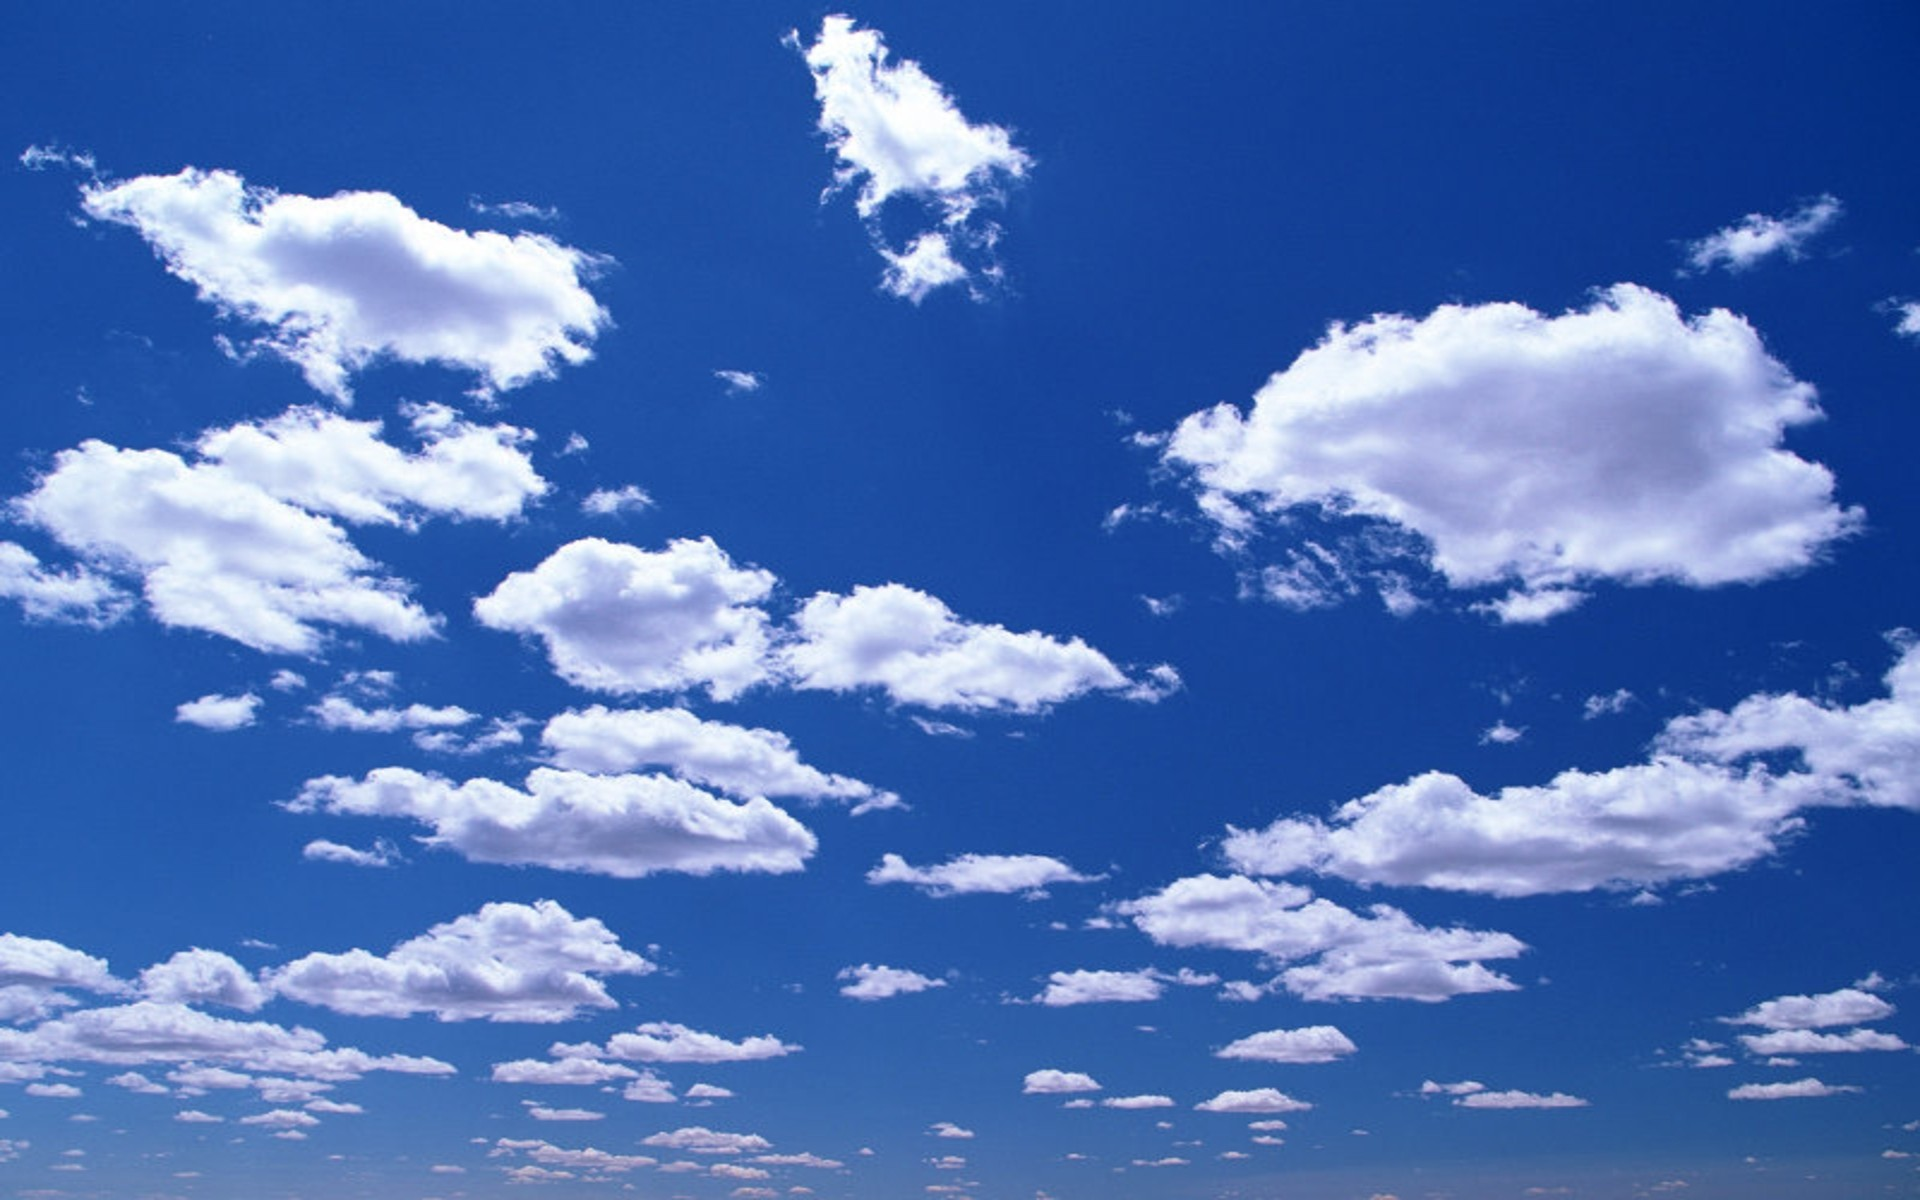 Res: 1920x1200, 1000+ ideas about Cloud Wallpaper on Pinterest - HD Wallpapers